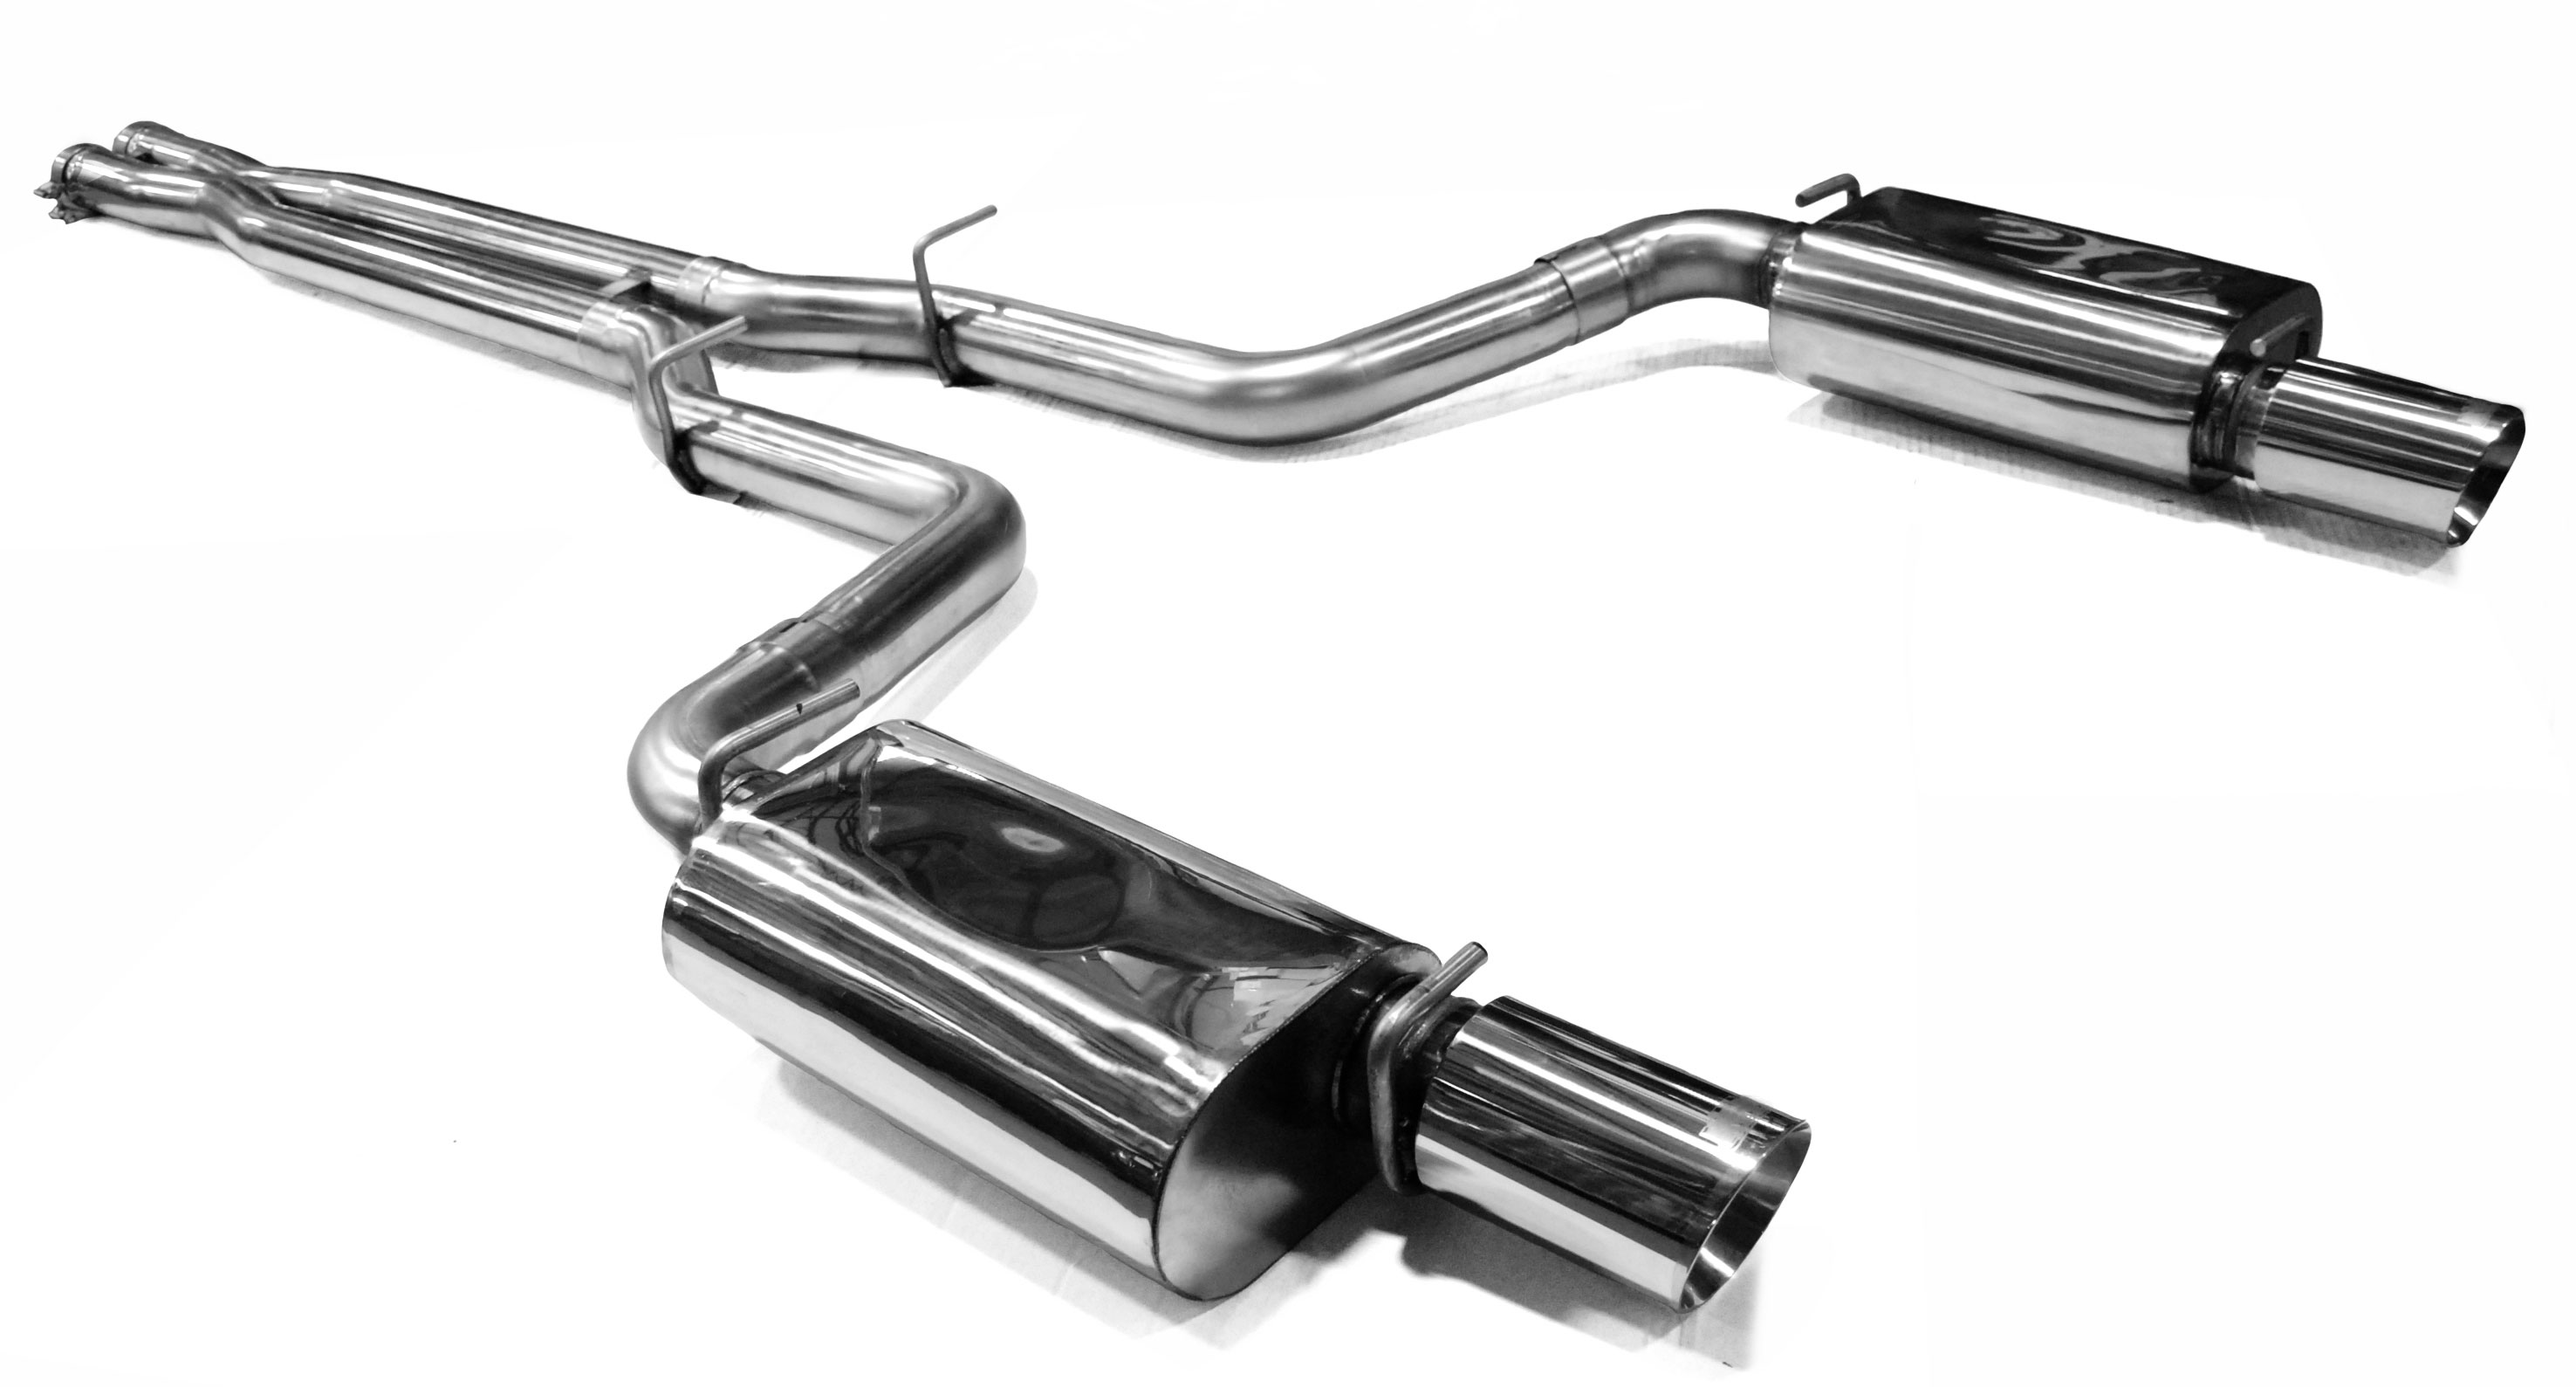 Worksheet. Headers 31124200 Kooks Exhaust System with XPipe 20062014 Dodge